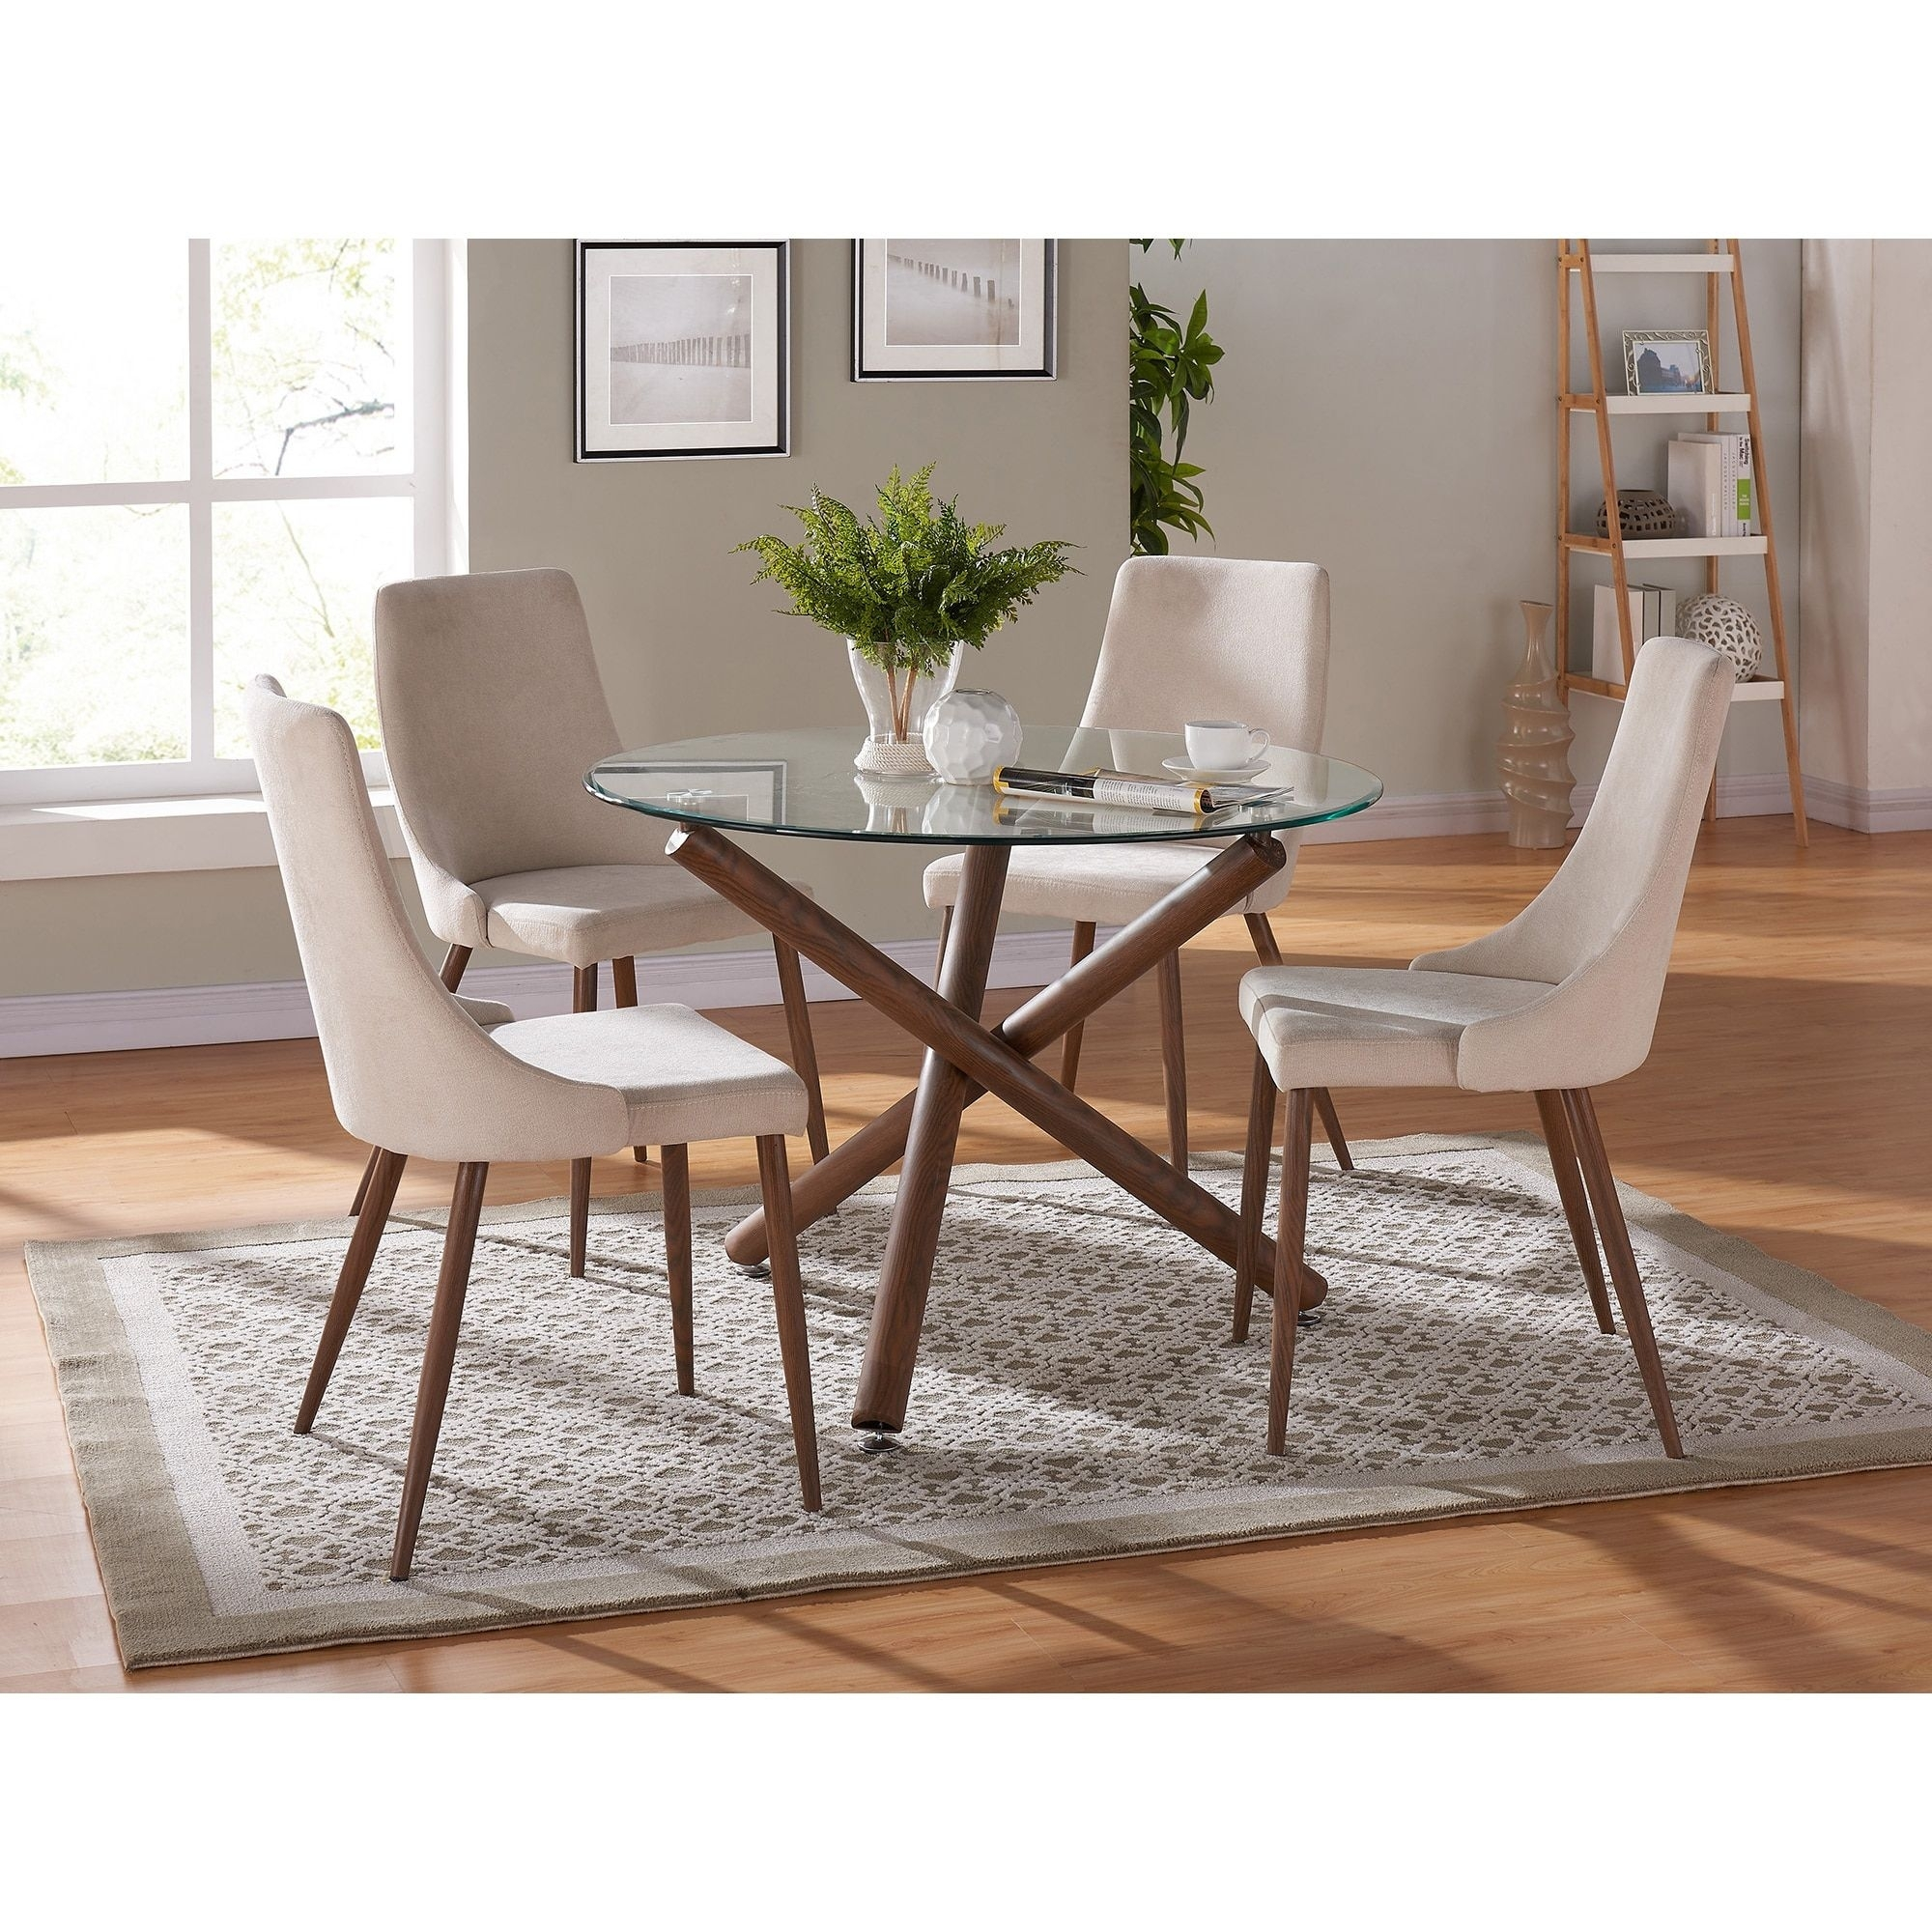 Dining Chairs, Fabric Dining Room Chairs: Make Mealtimes More For Latest Cora 5 Piece Dining Sets (Image 13 of 20)